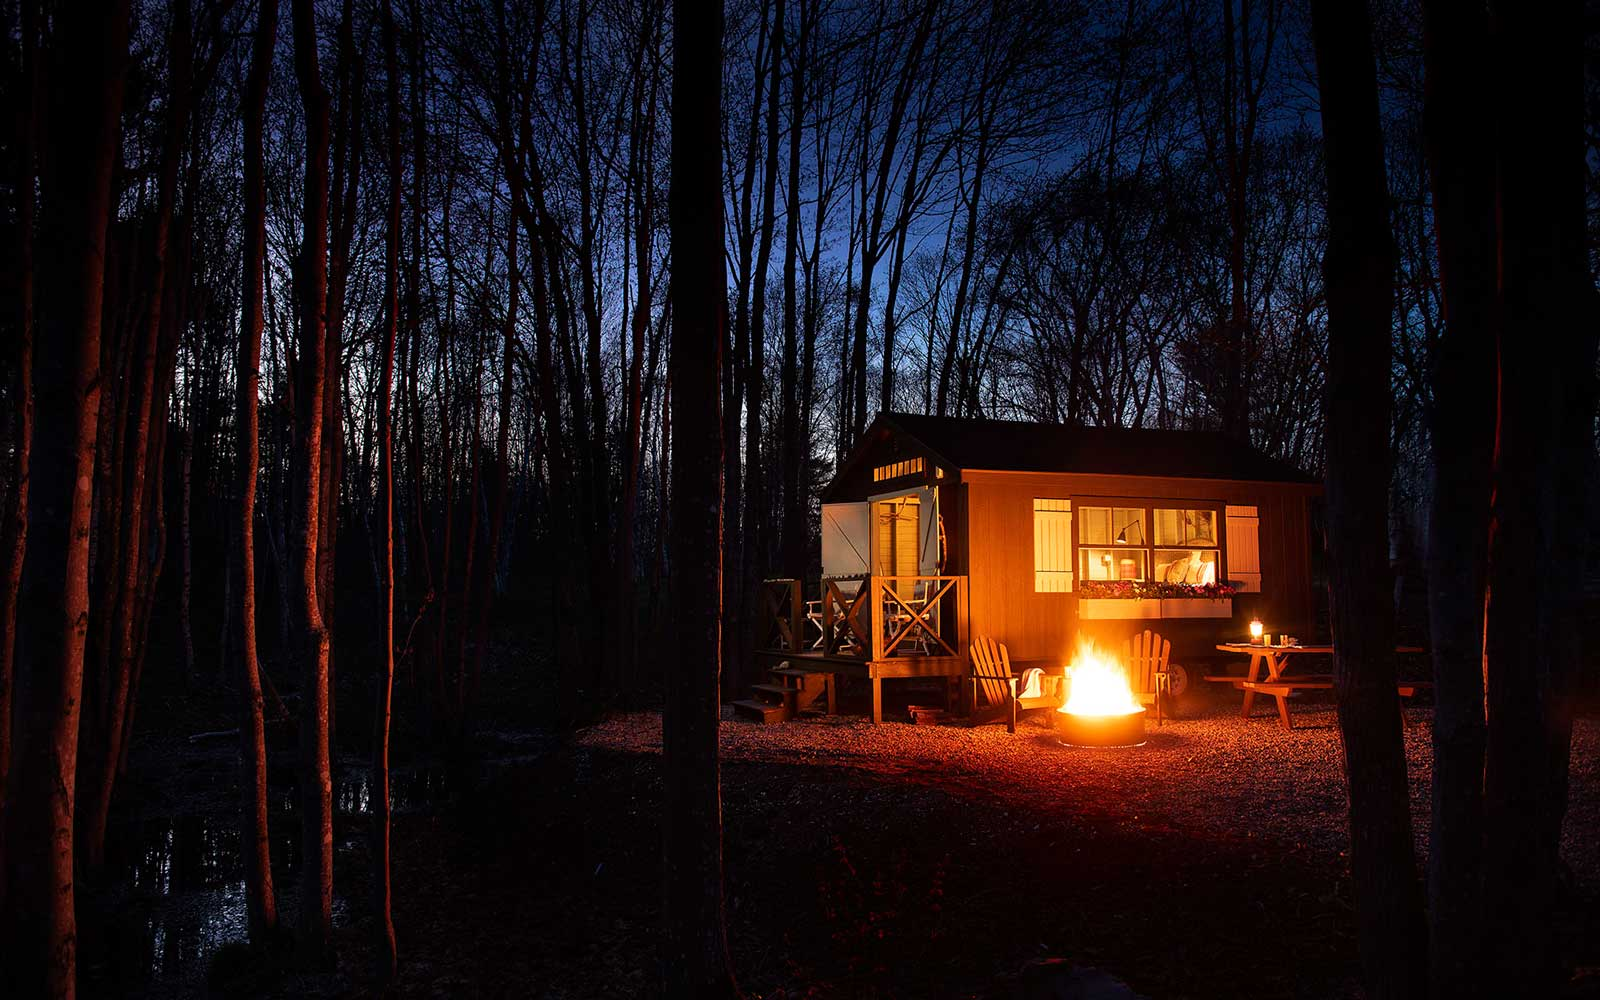 Sandy Pines Campground, Maine